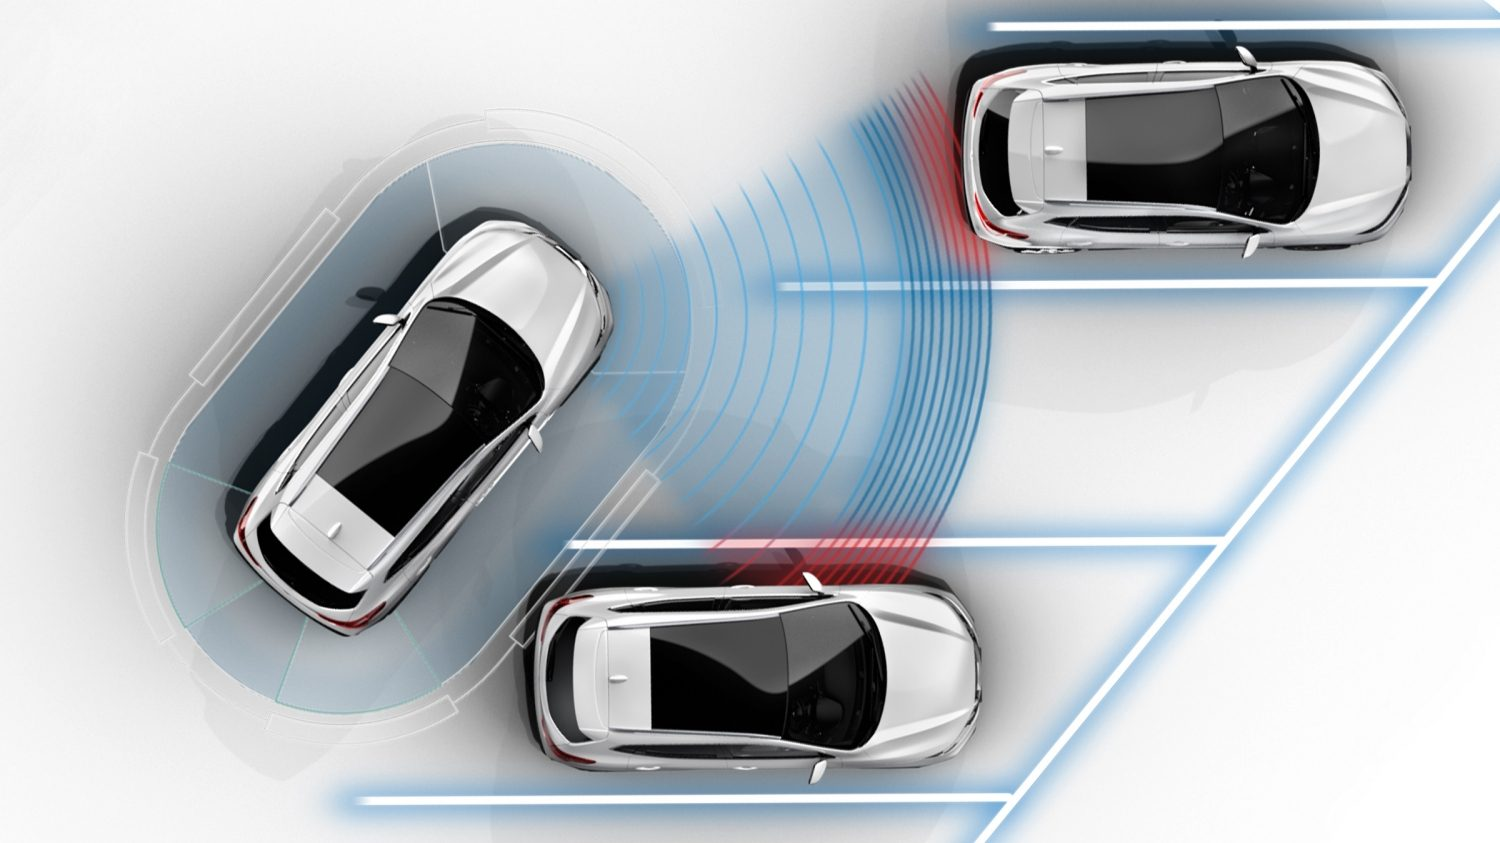 Qashqai Intelligent park assist illustration